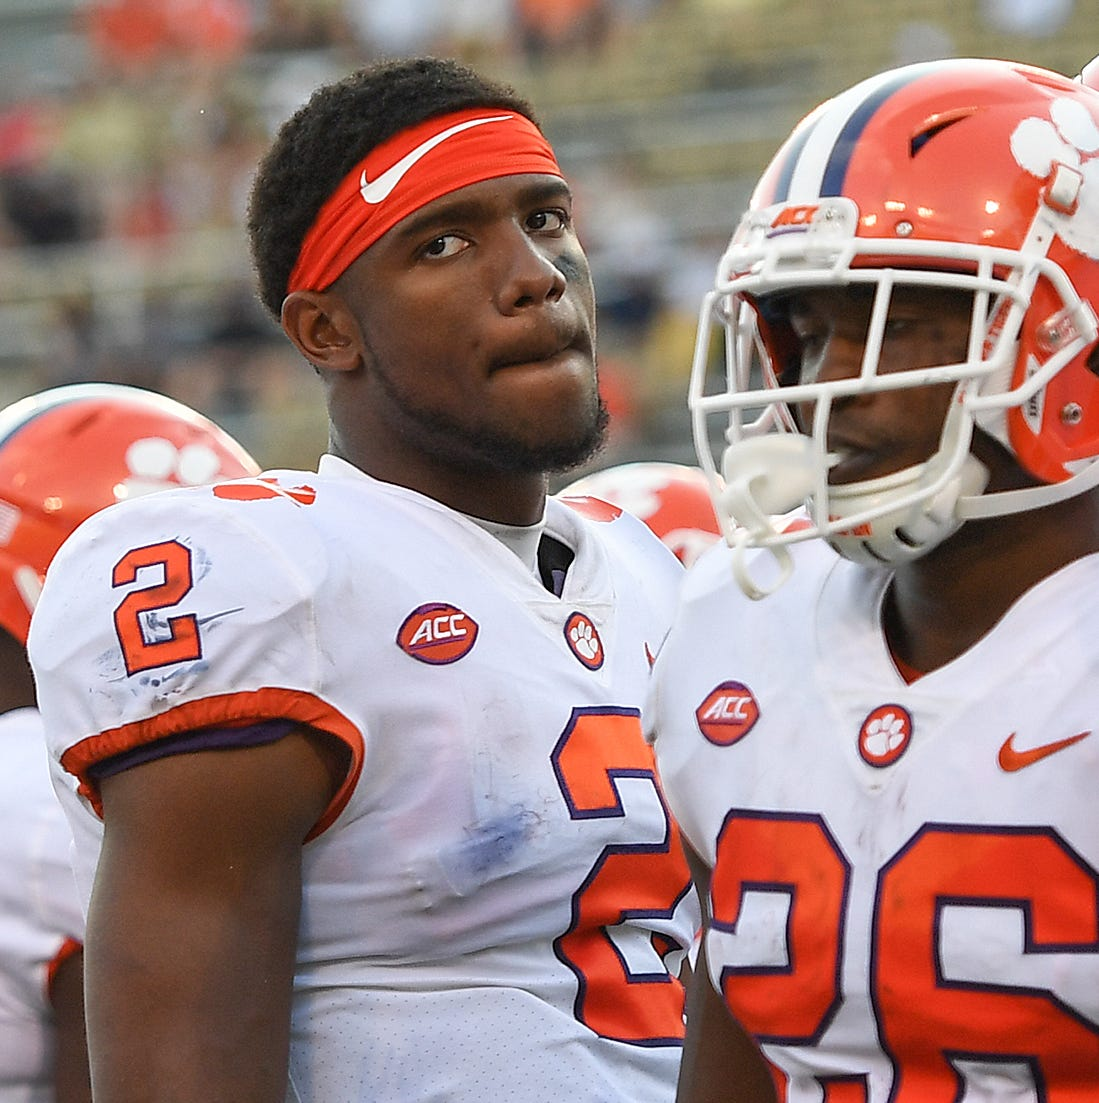 Clemson football coach Dabo Swinney had 'deep, long, emotional' talk with QB Kelly Bryant